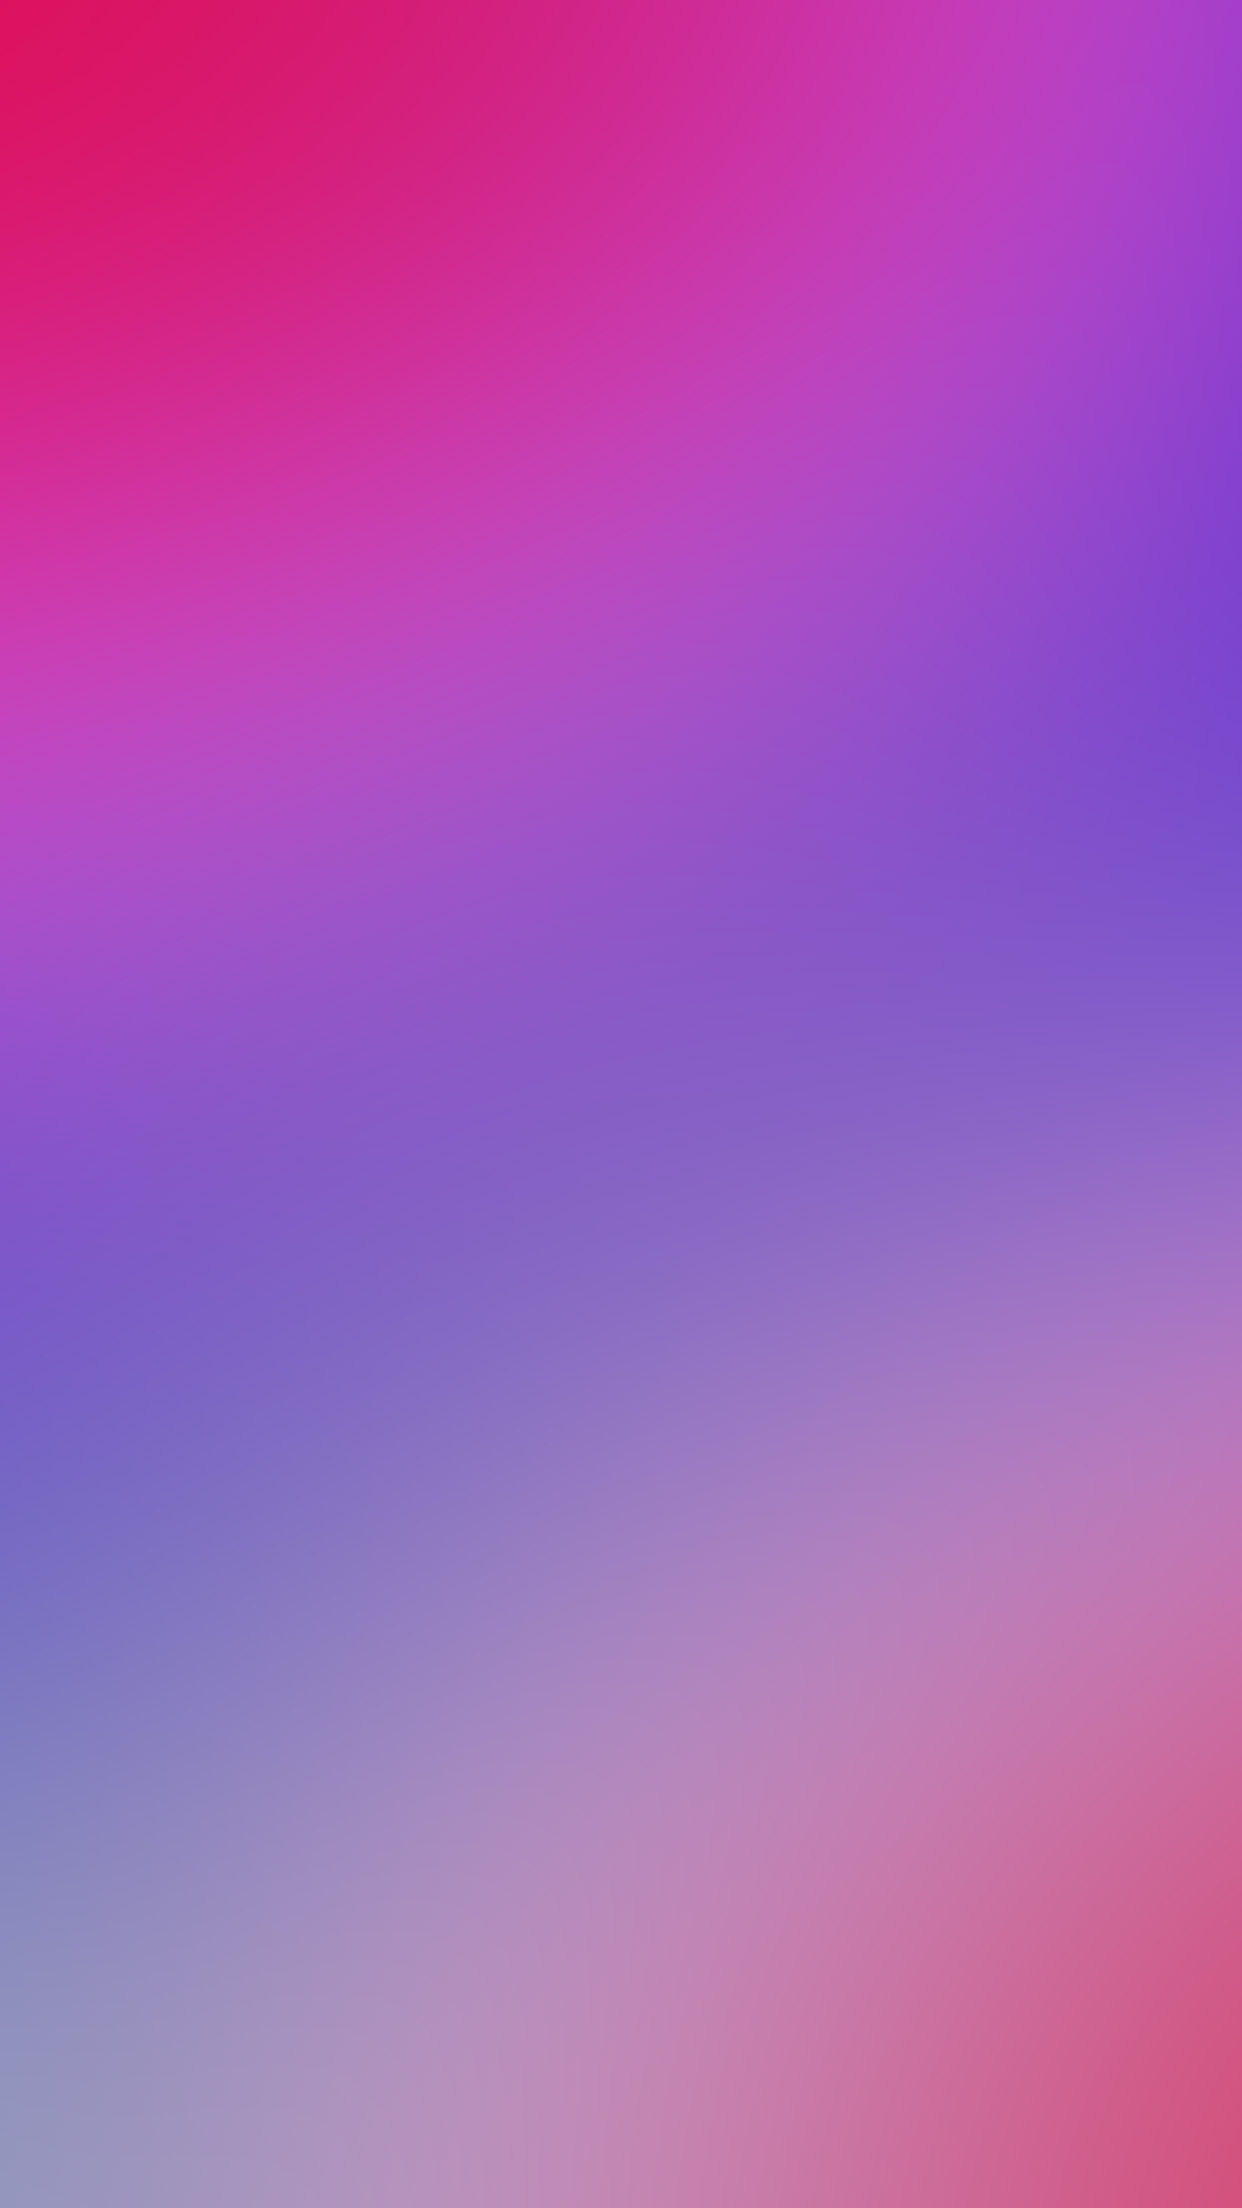 November Fall Wallpaper Papers Co Iphone Wallpaper Sn32 Red Purple Blur Gradation